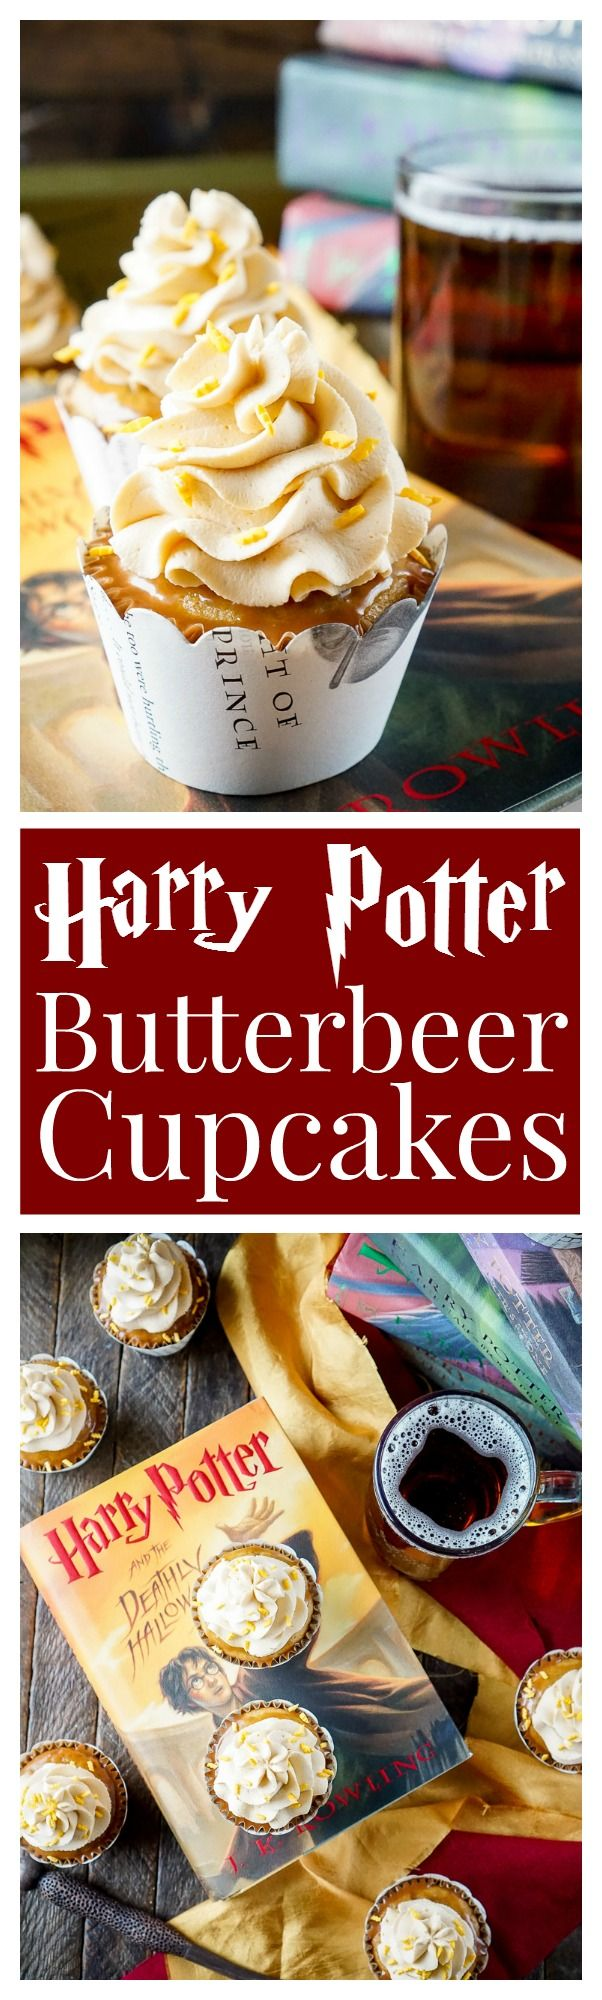 These Harry Potter Butterbeer Cupcakes Are AMAZING And Will Cast A Spell On Your Taste Buds